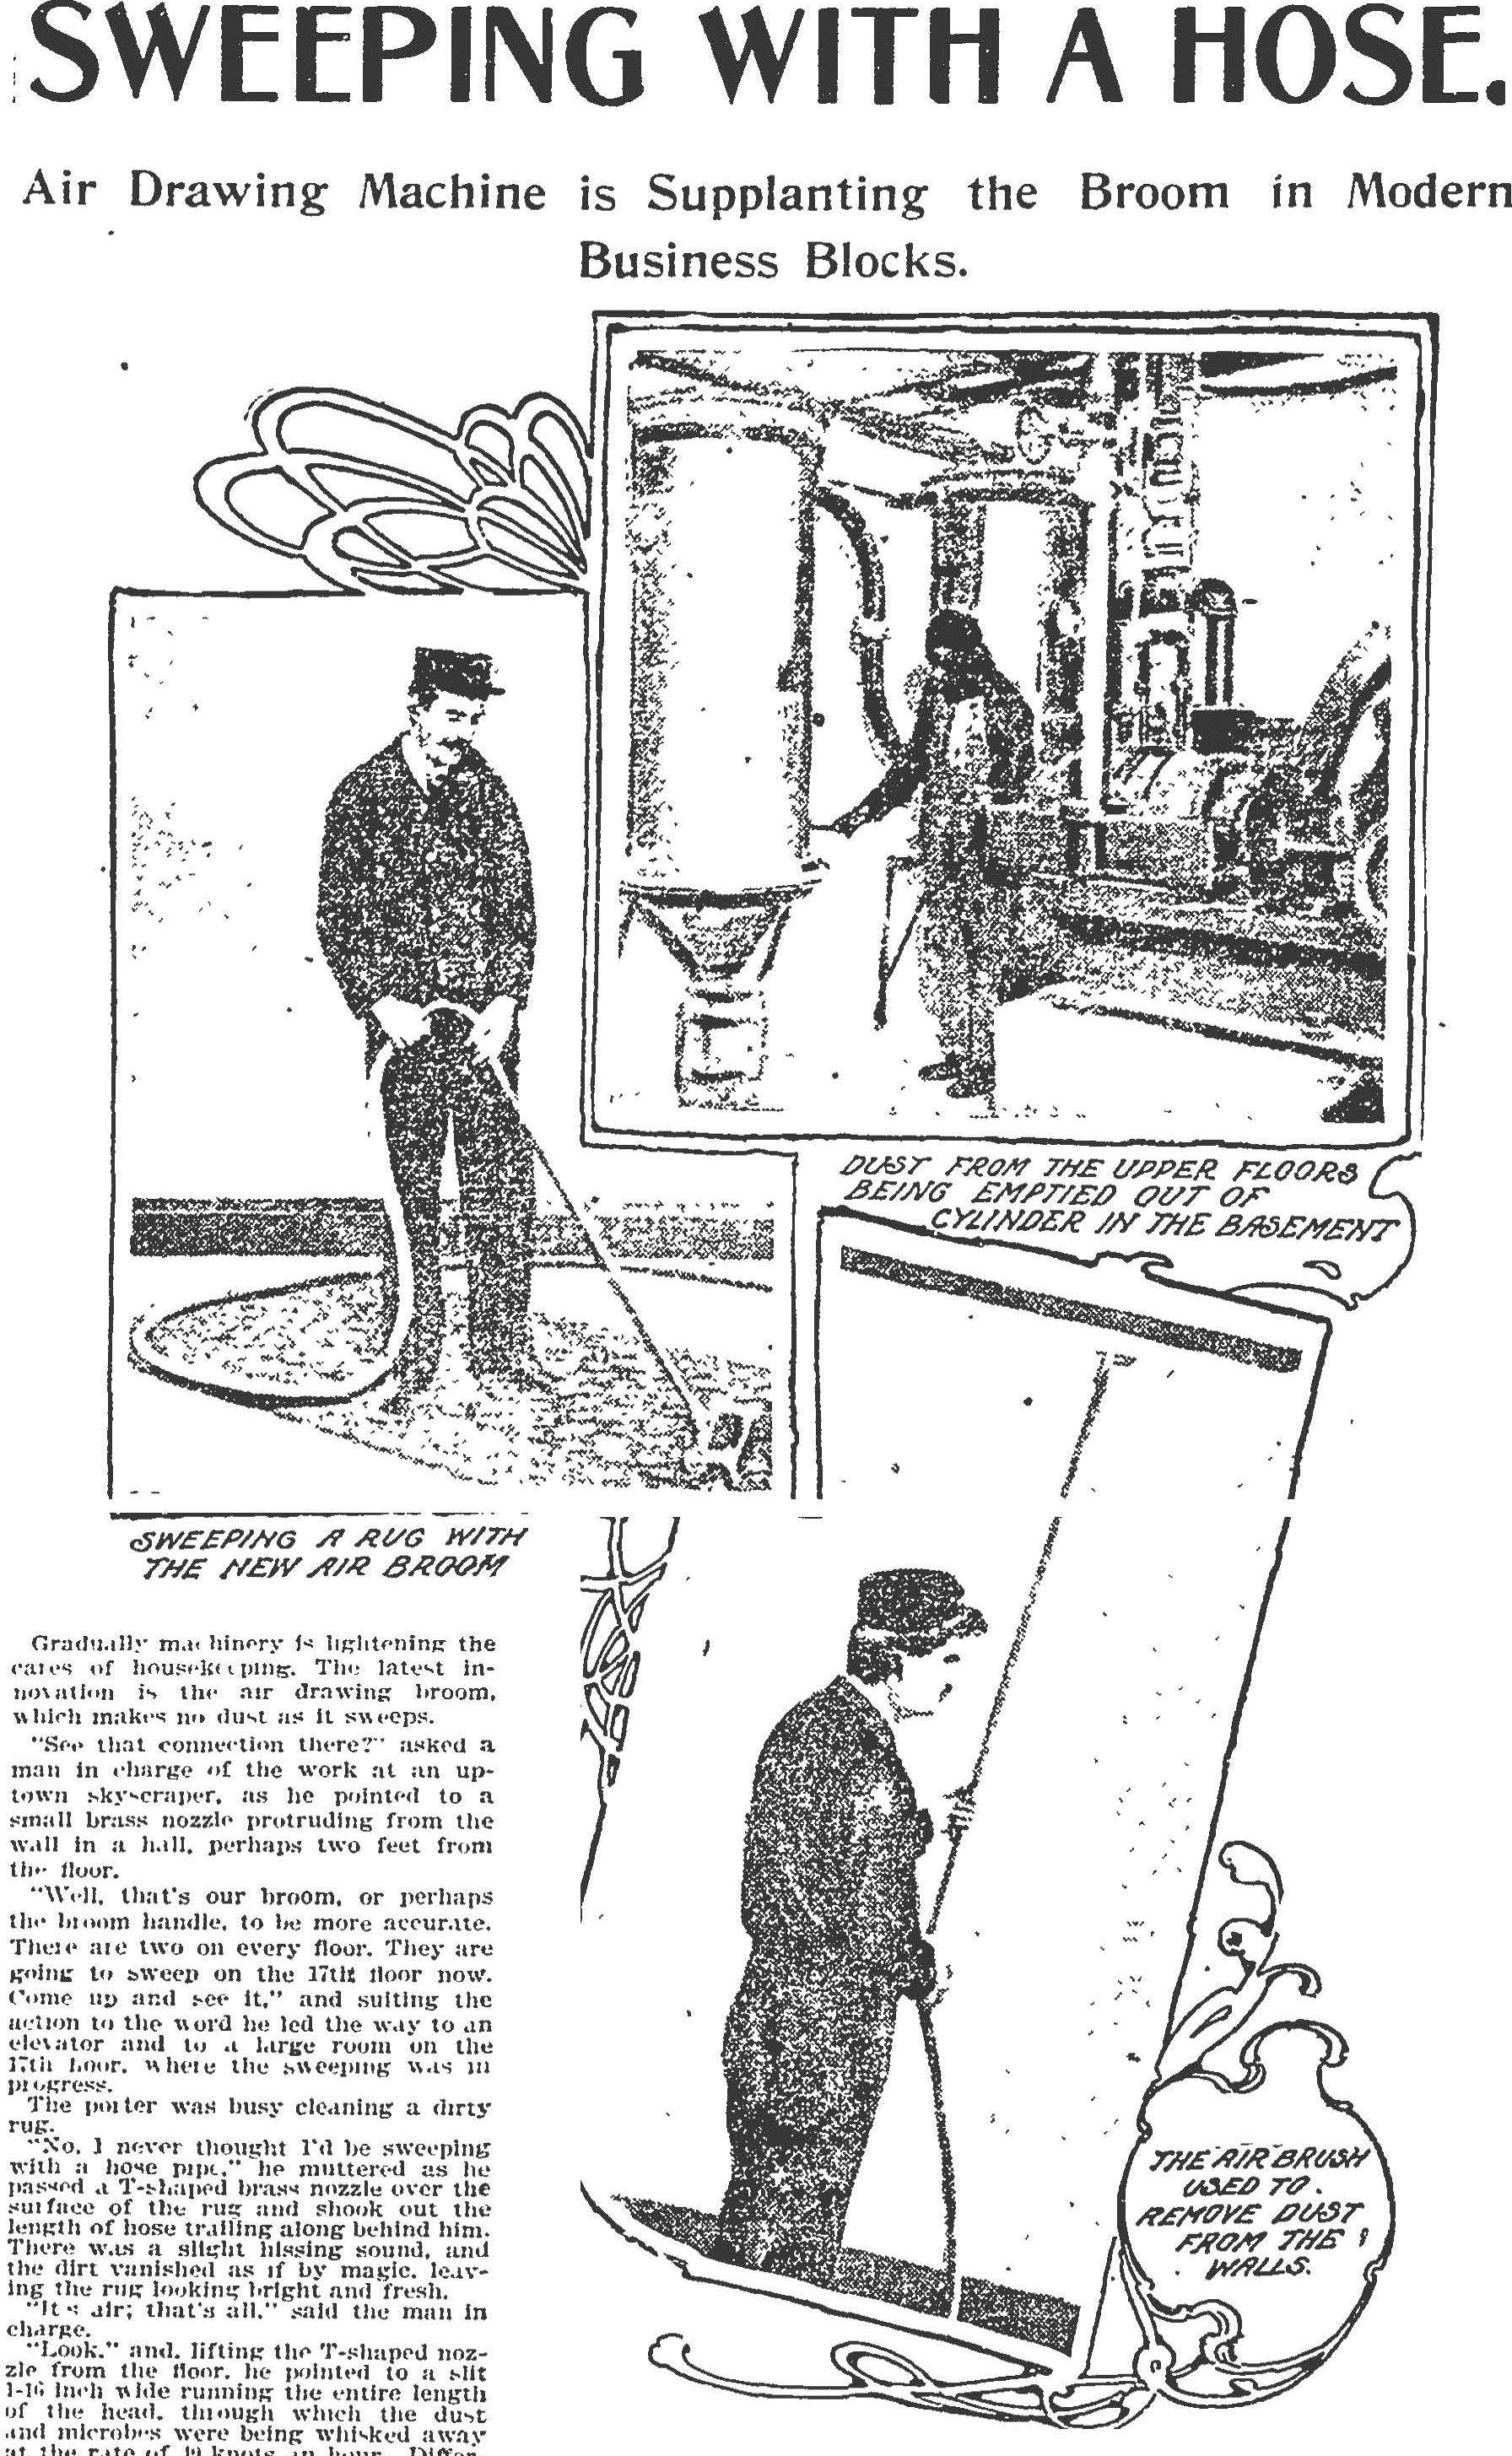 """Sweeping with a Hose"" Boston Globe January 4, 1903. In an October 8, 1905 Globe article (""Nooks in the Boston Library that are Unfamiliar to the Public""), it is noted that ""a vacuum cleaner is in process of installation [at the Boston Public Library], which will reach to all parts of the building, and without raising any dust will draw in the dust from every nook and corner and keep the library and books cleaner and sweeter than has ever before been possible."""